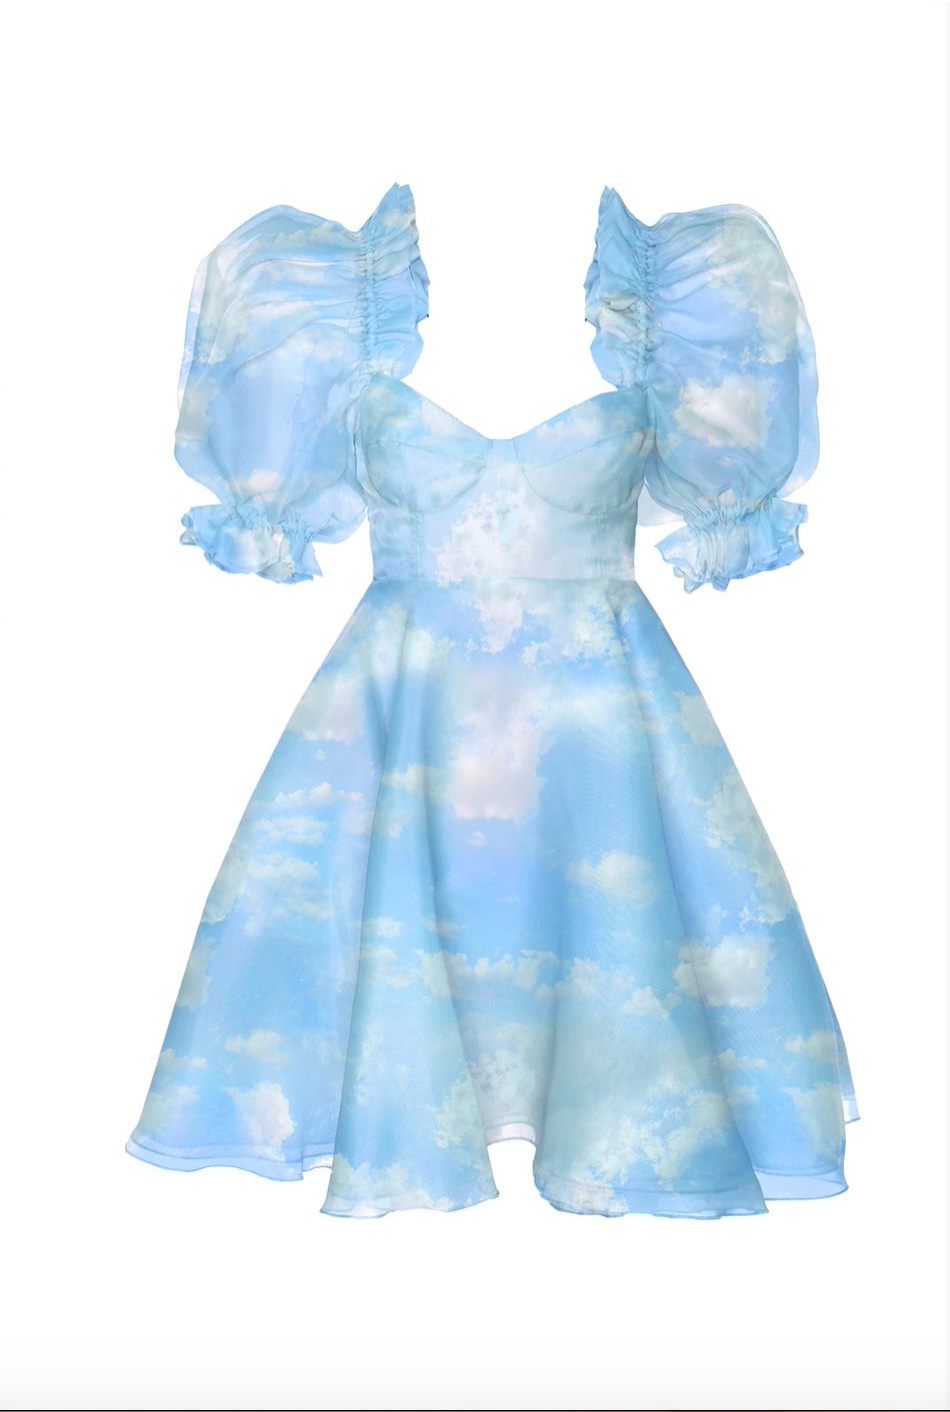 Head in the Clouds Parliament Dress Pre Order Ships May 5th